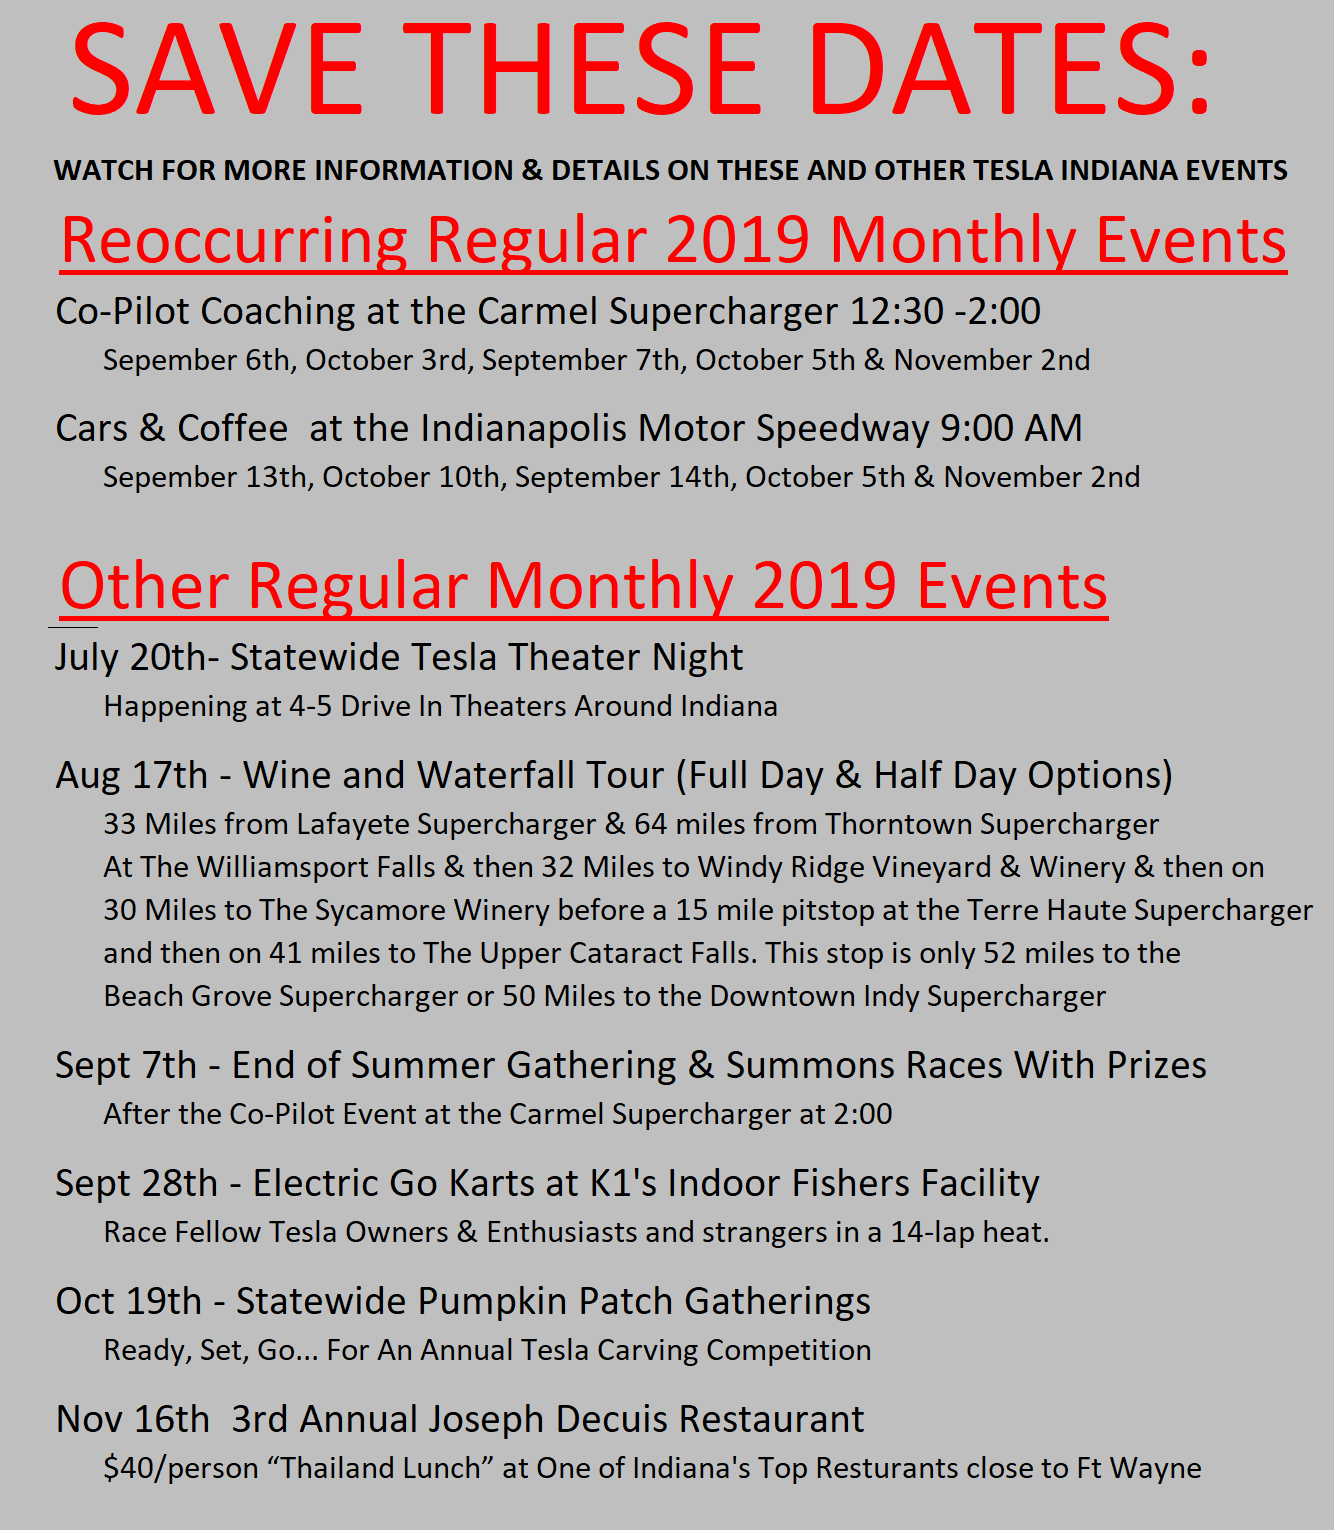 2019 2nd half events